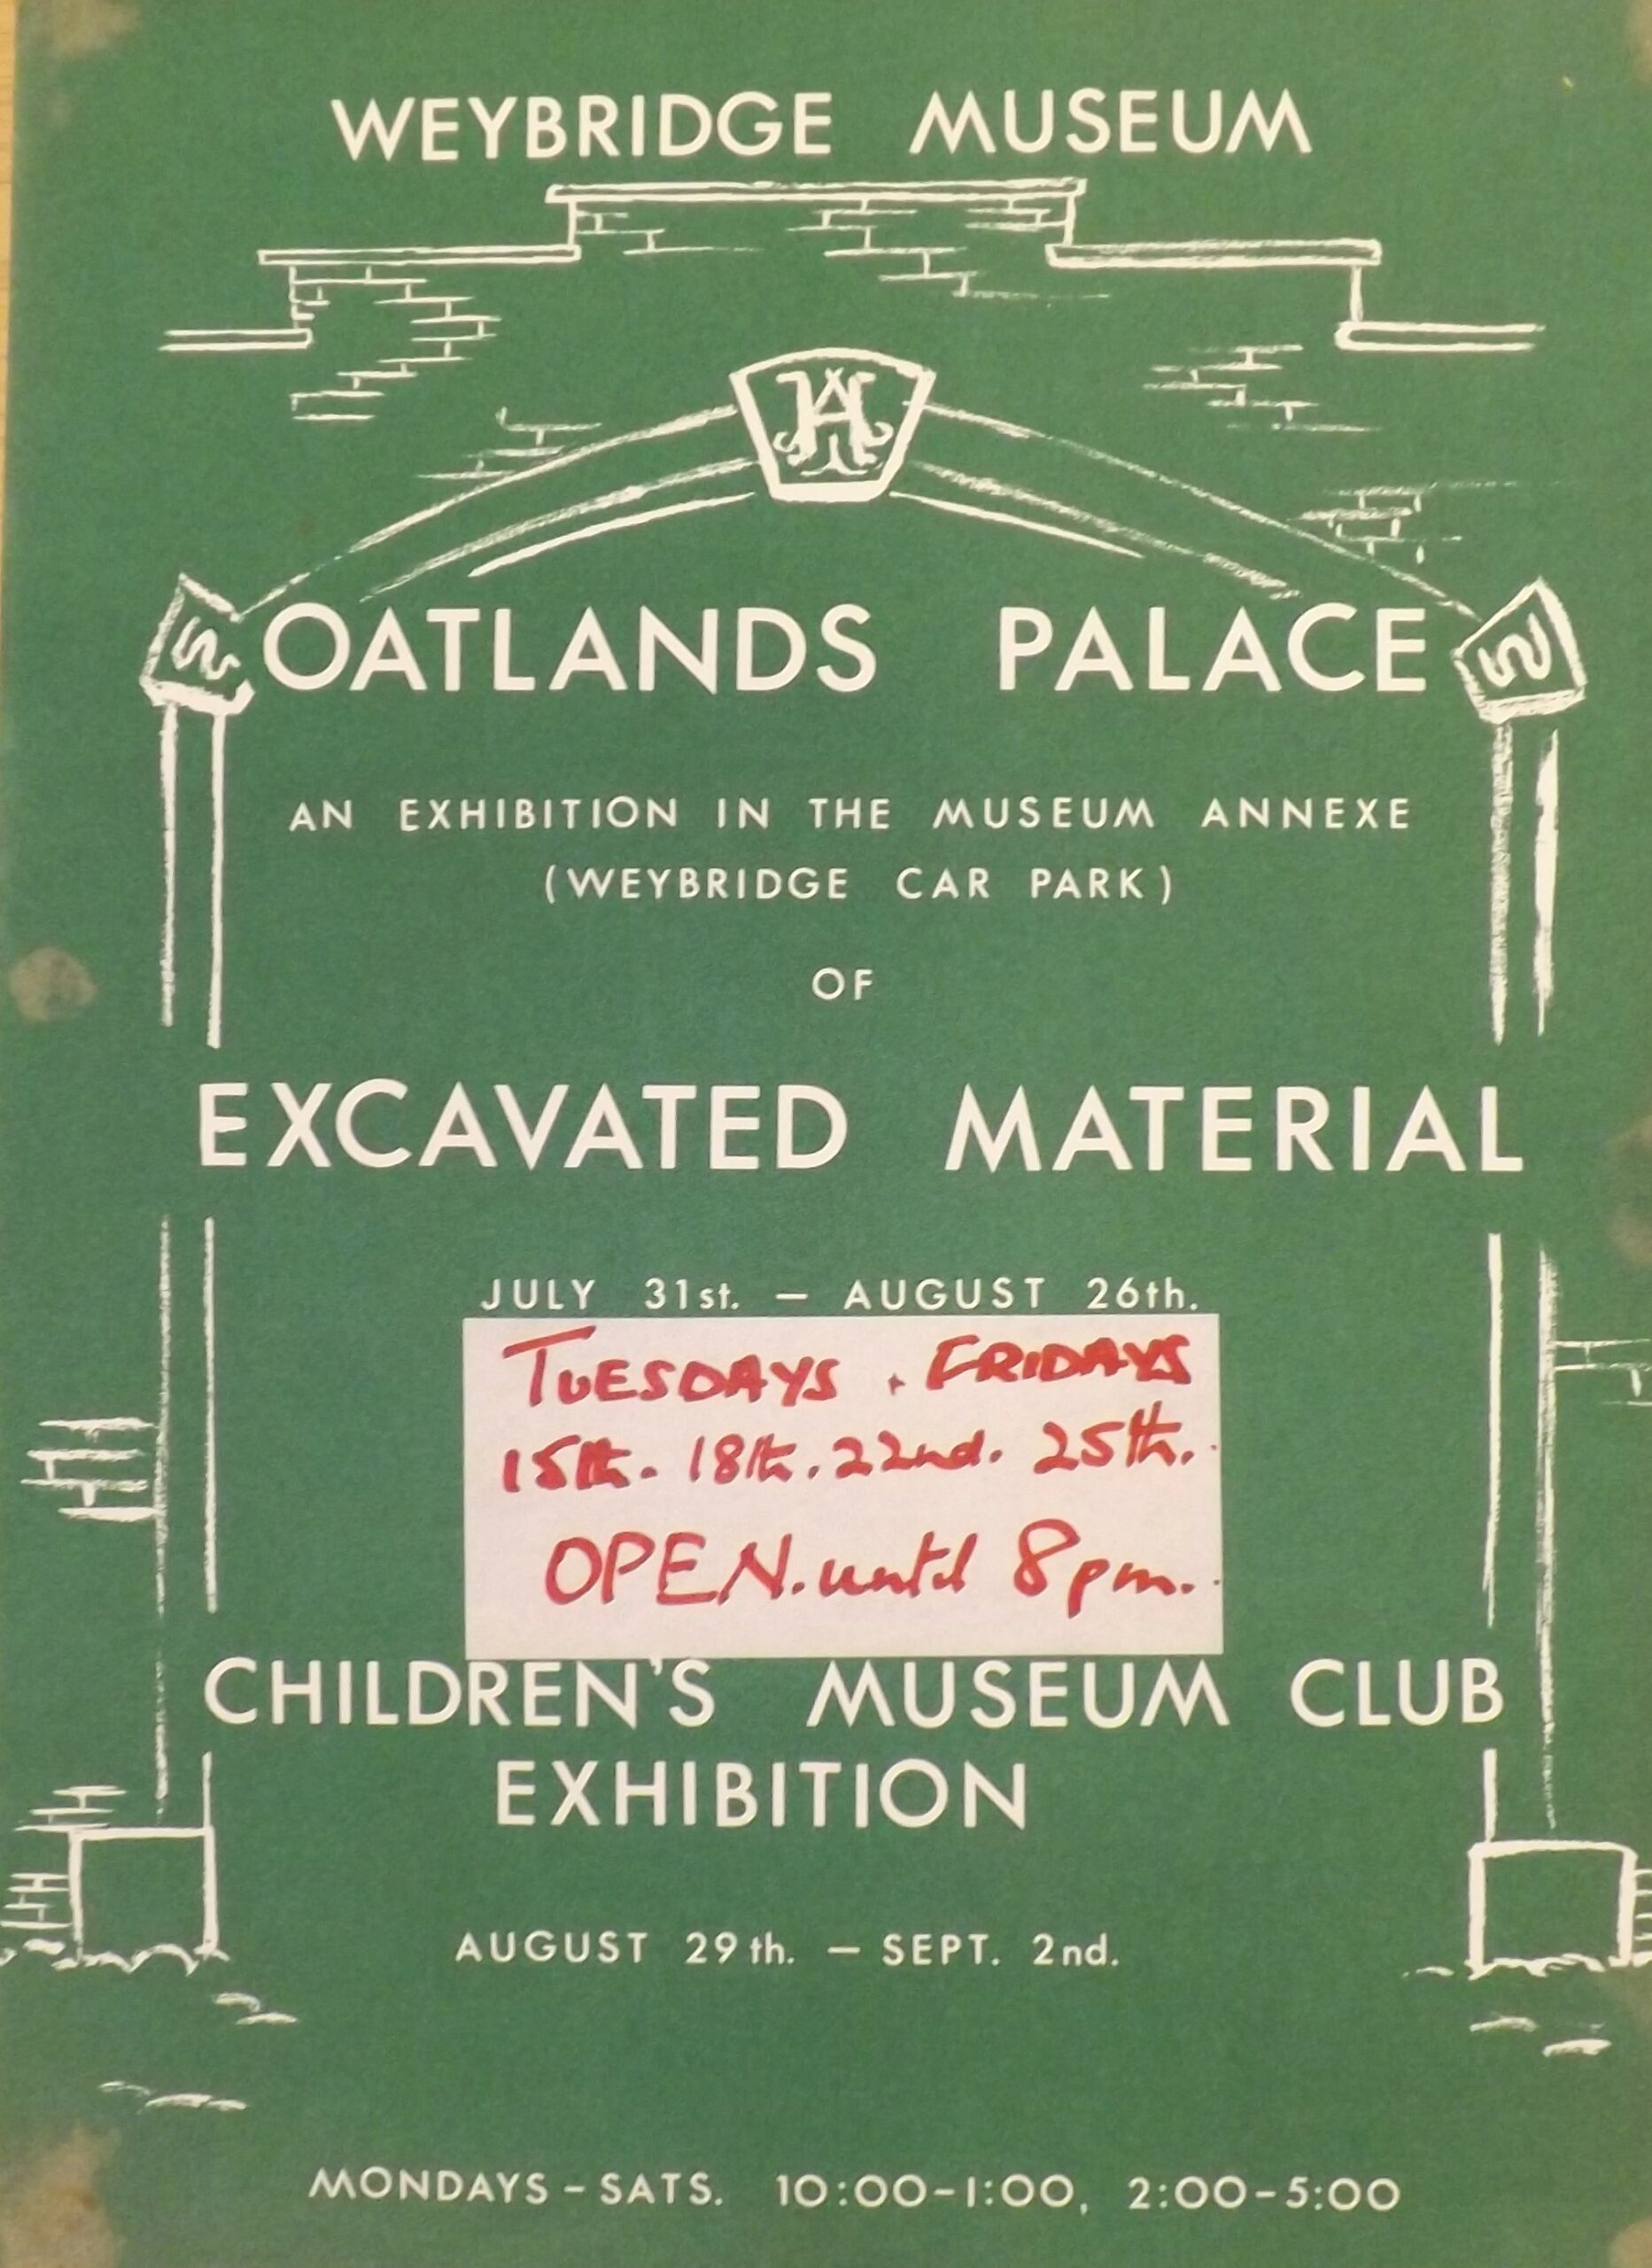 Museum poster from Weybridge Museum (now Elmbridge Museum) advertising an 'Oatlands Palace Excavated Material' exhibition in 1982, in their former gallery space above Weybridge Library, Church Street.